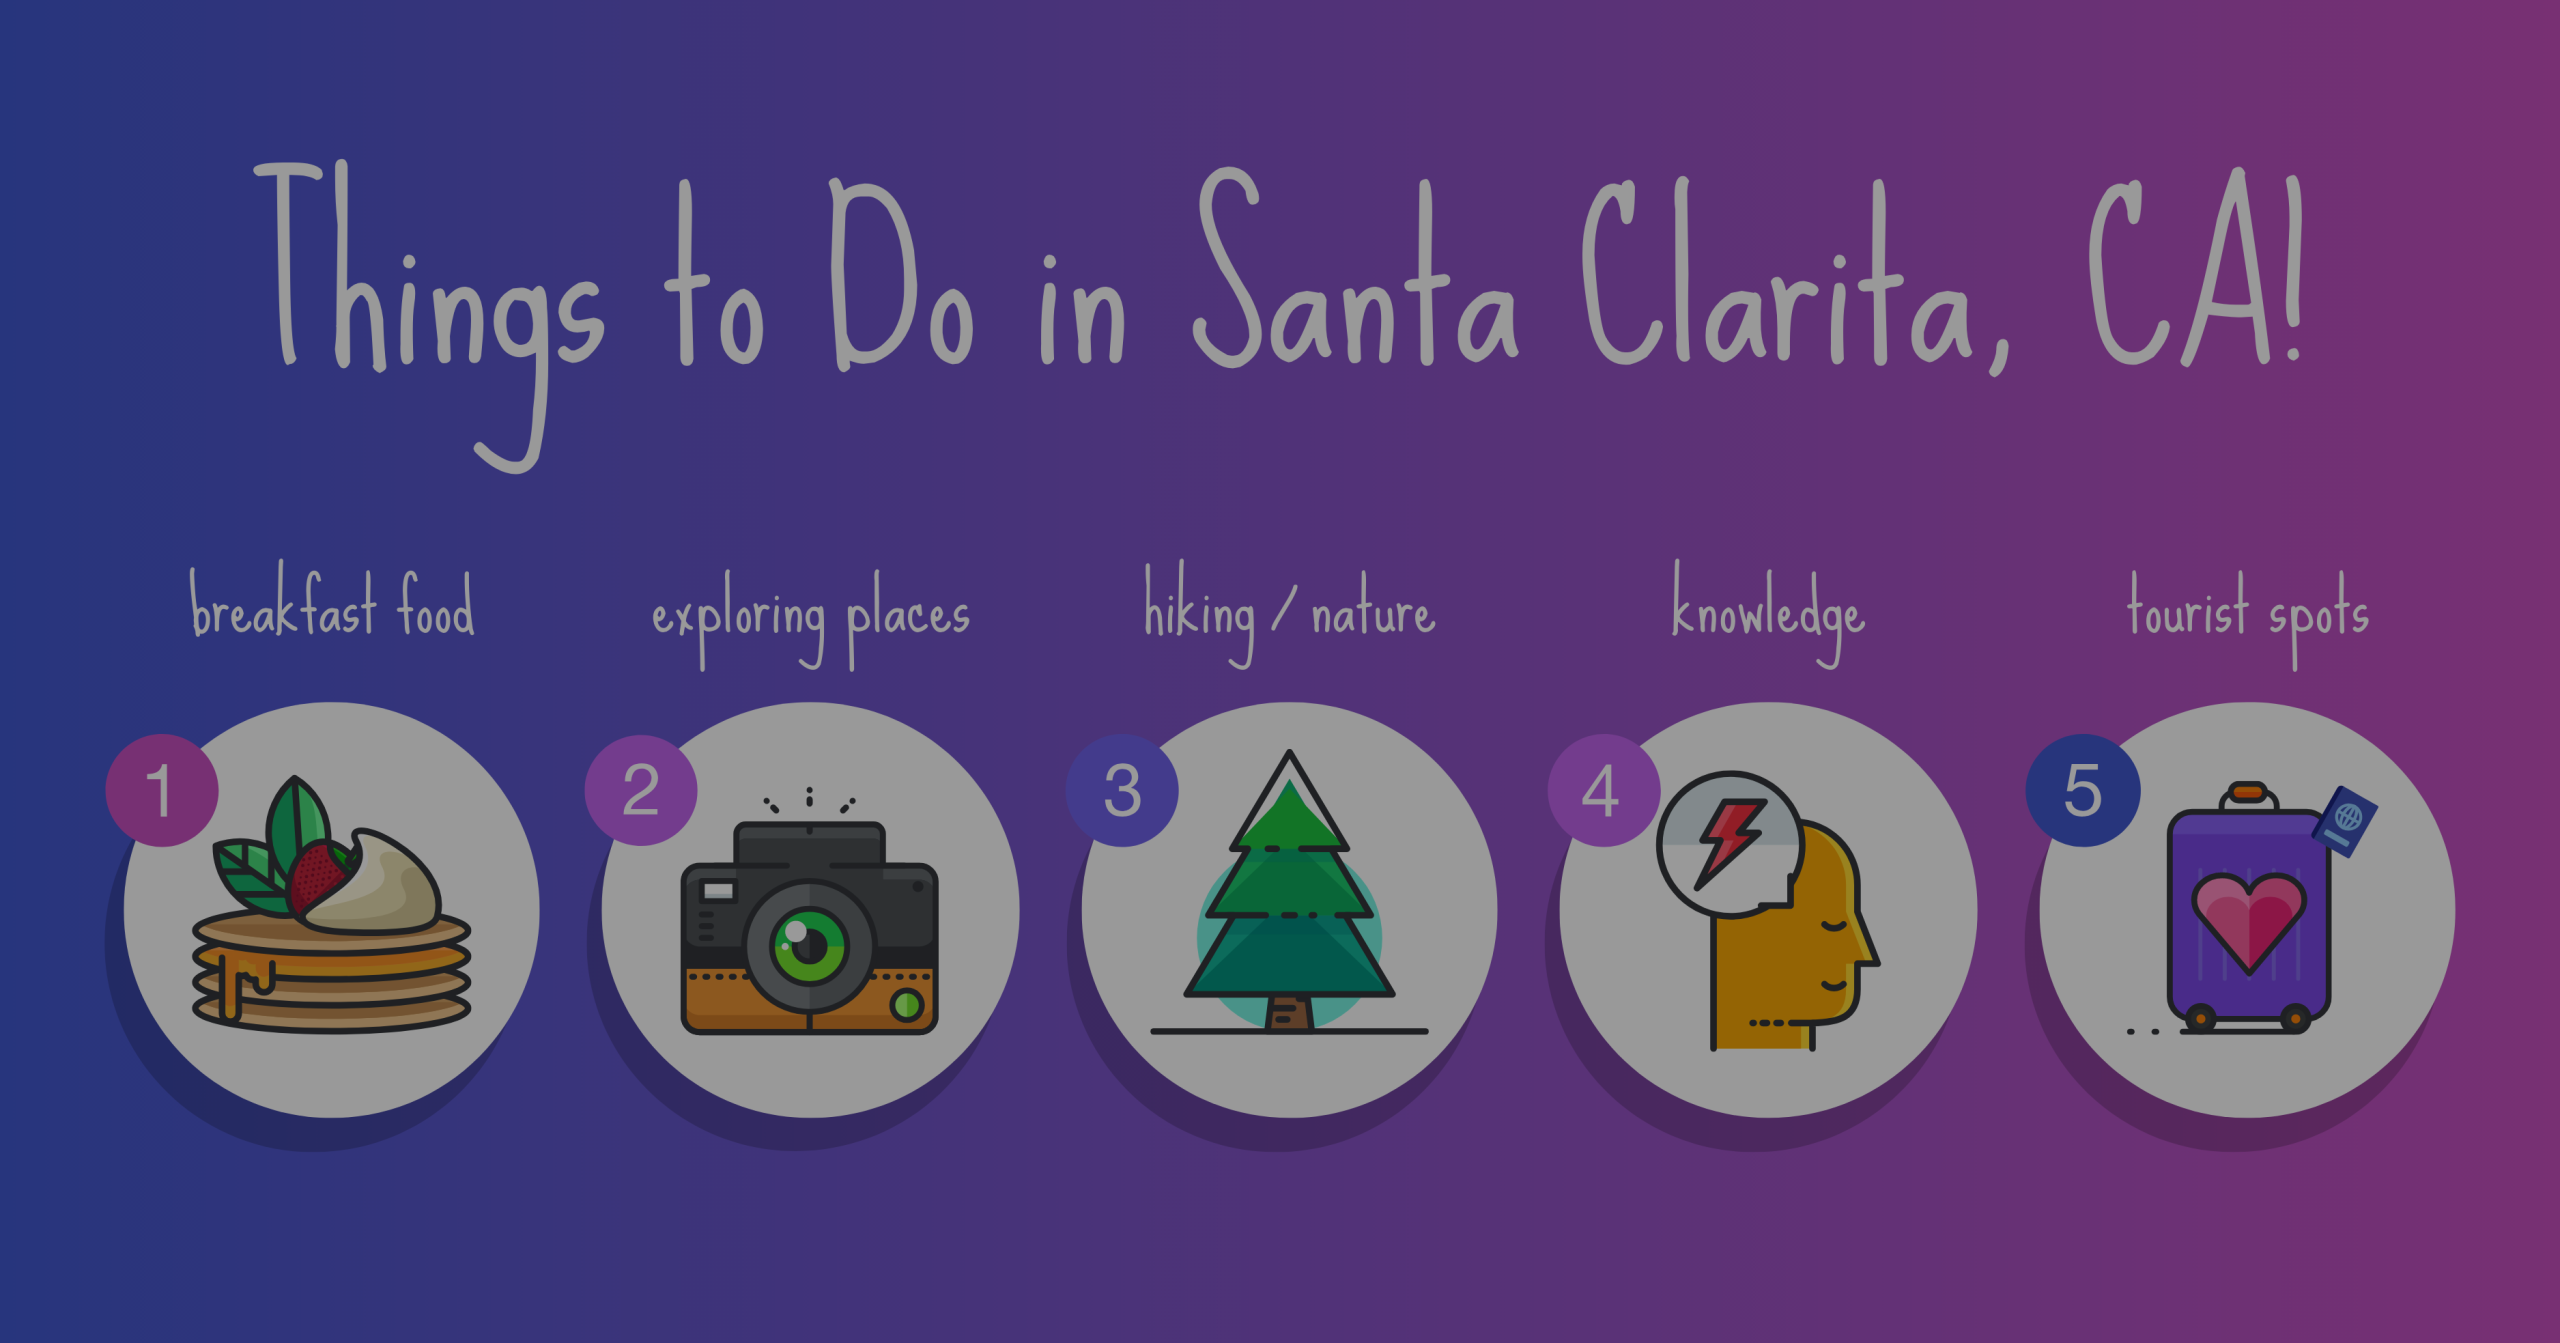 Things to Do In Santa Clarita